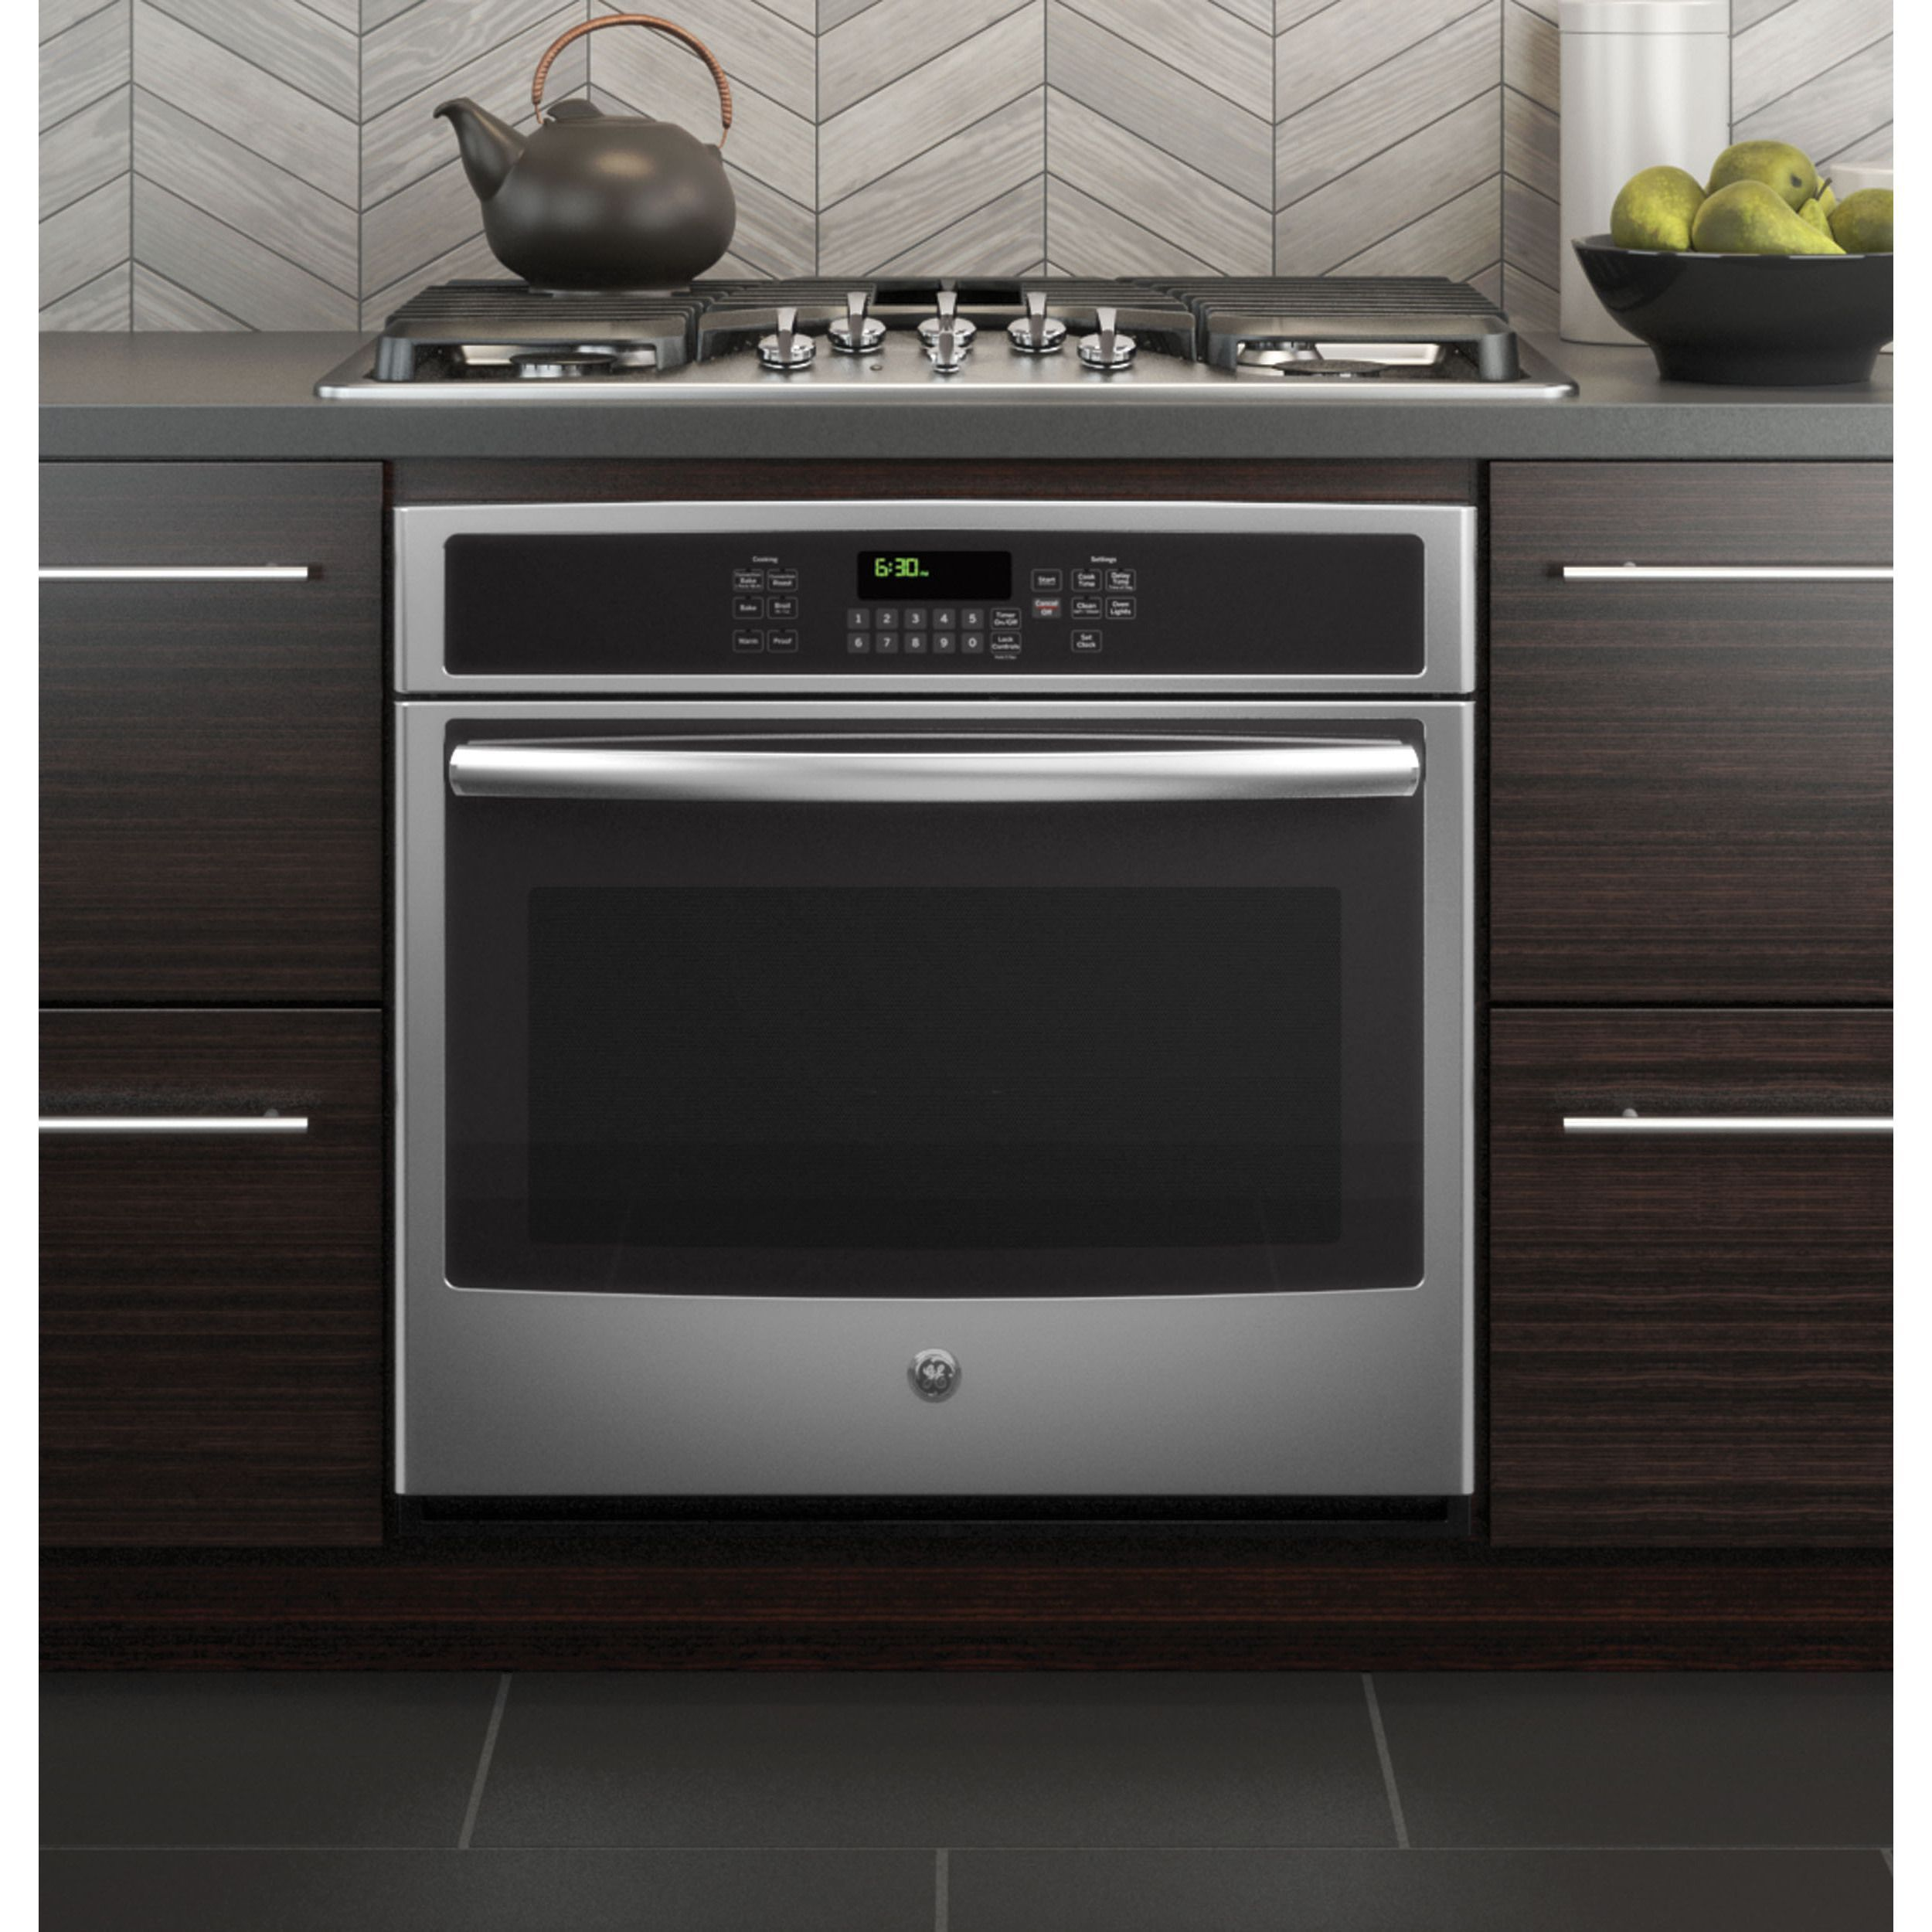 The GE 30 inch Built in Single Convection Wall Oven Made with a